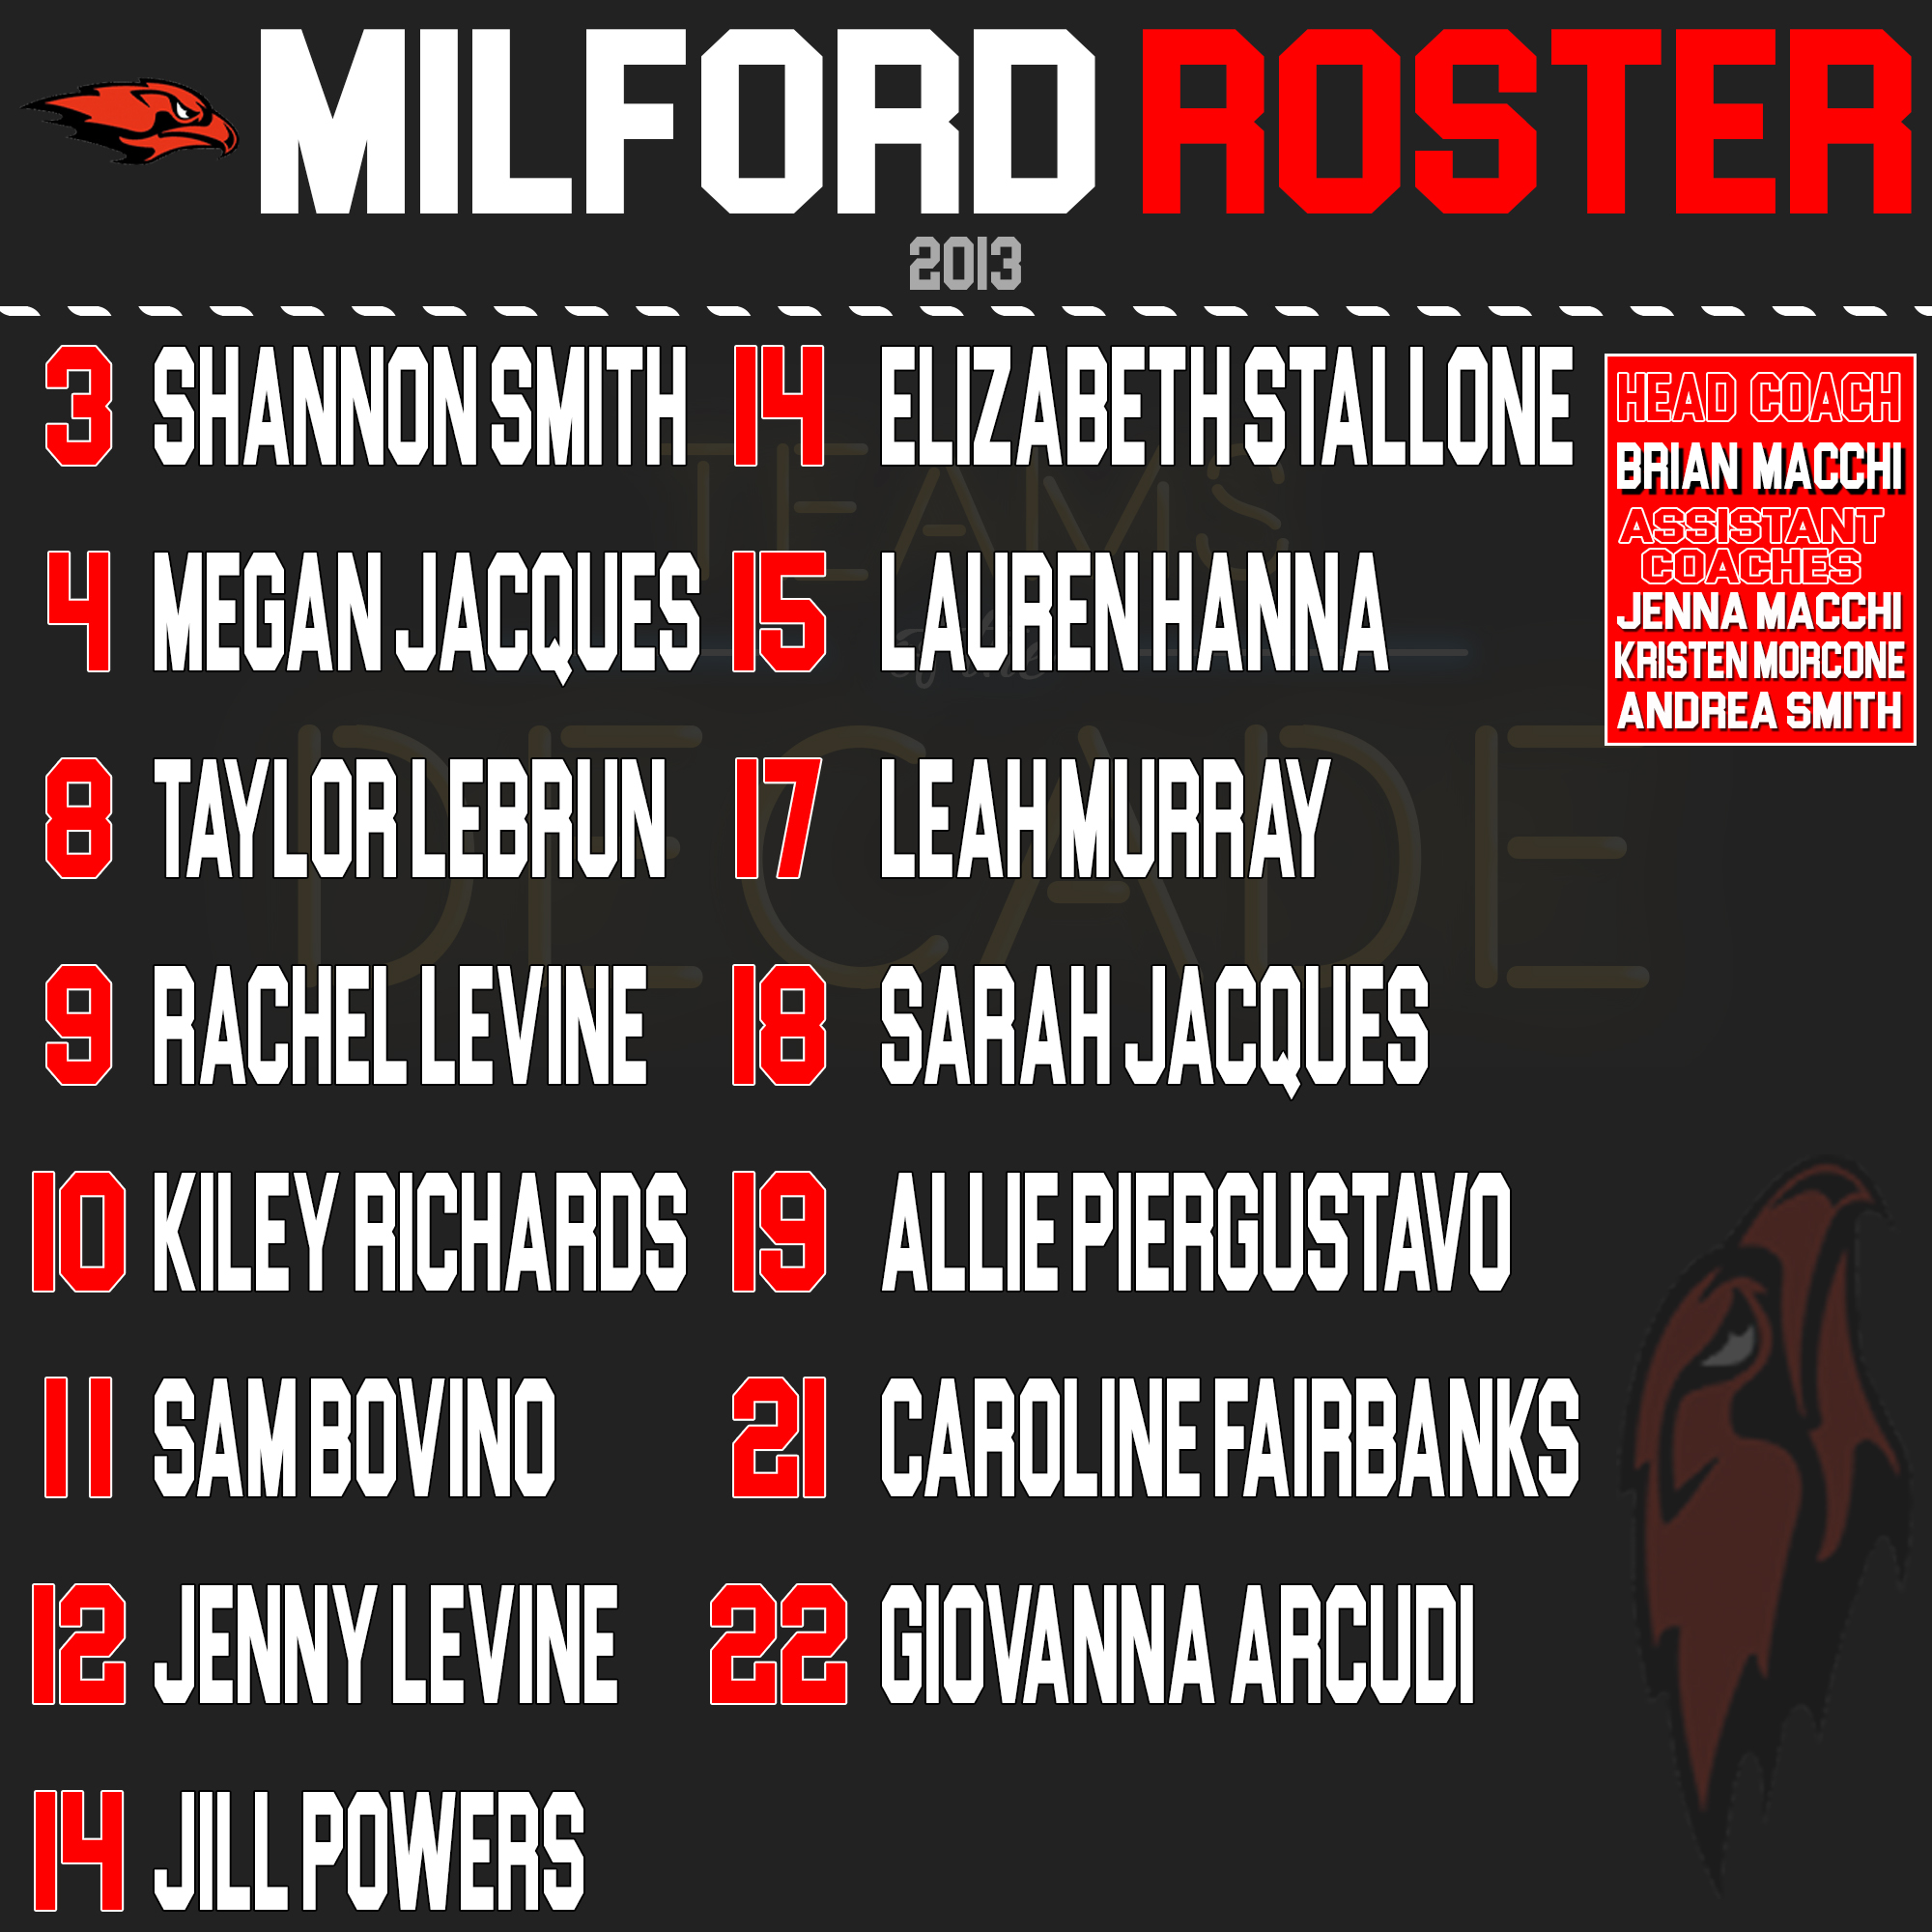 Milford softball